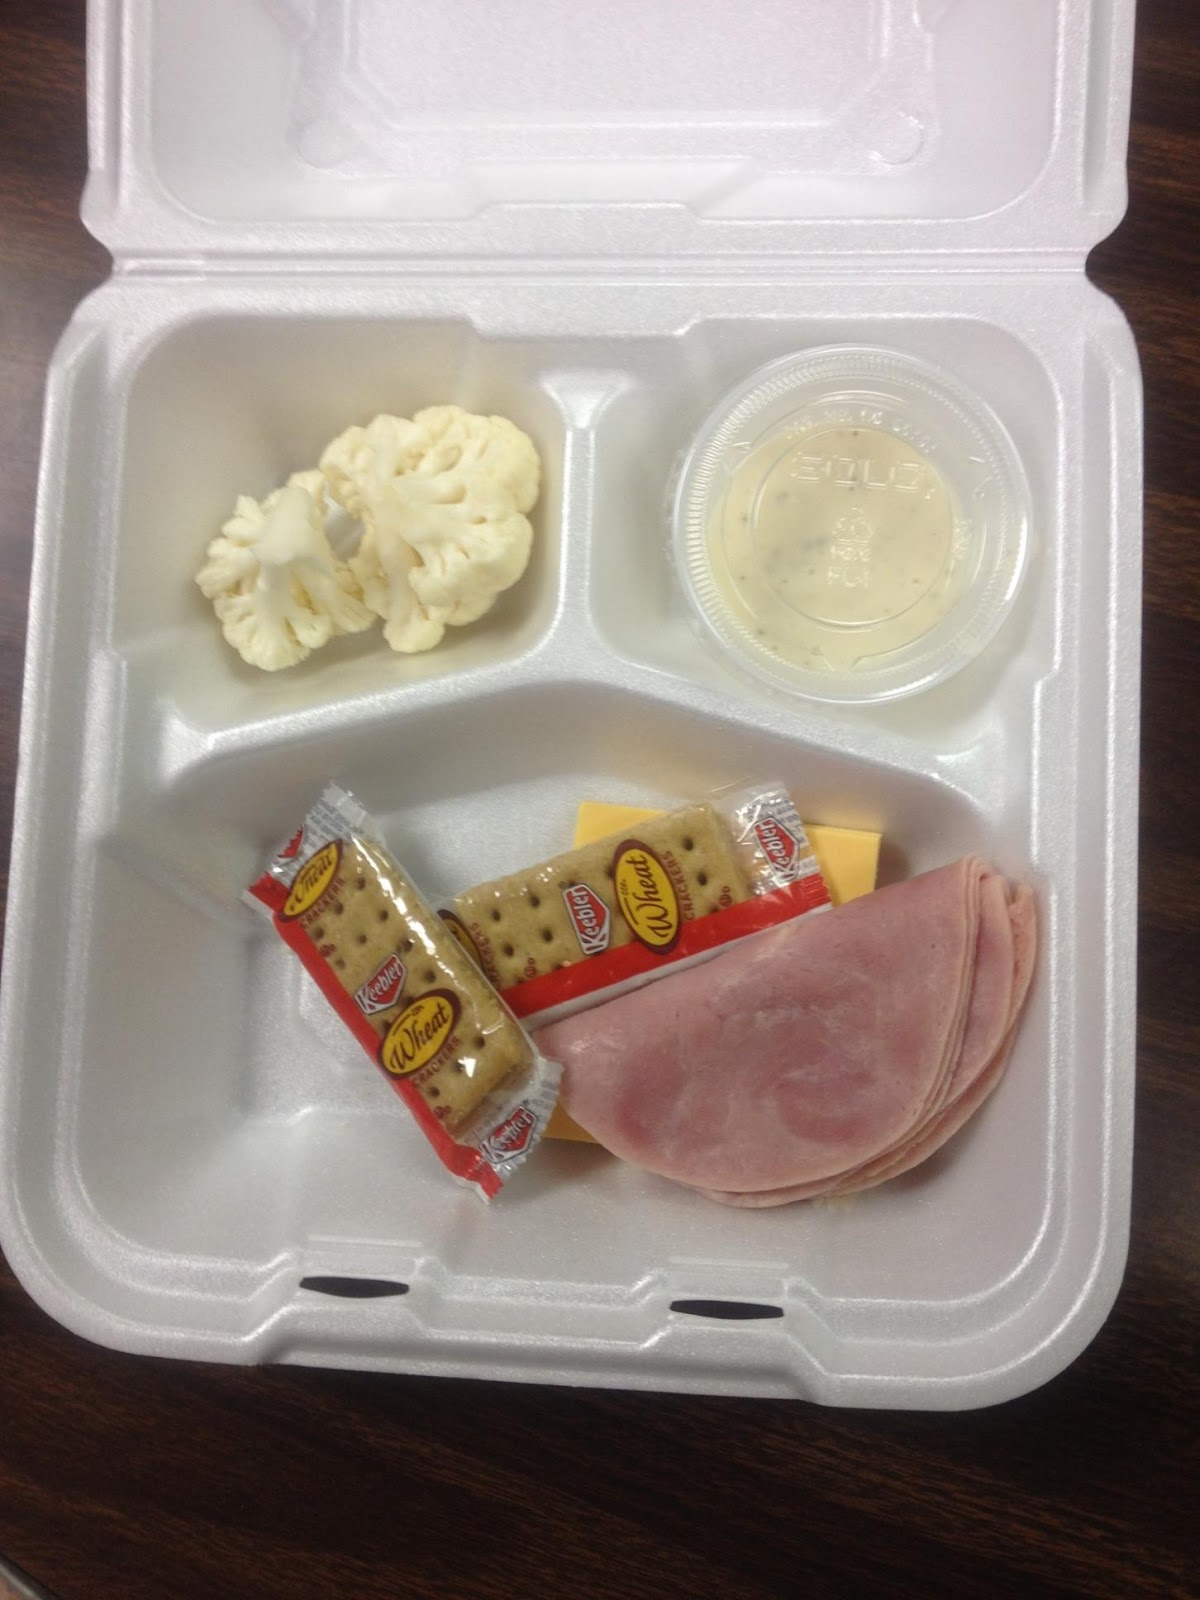 School Lunches Leave Students Stomachs Growling advise